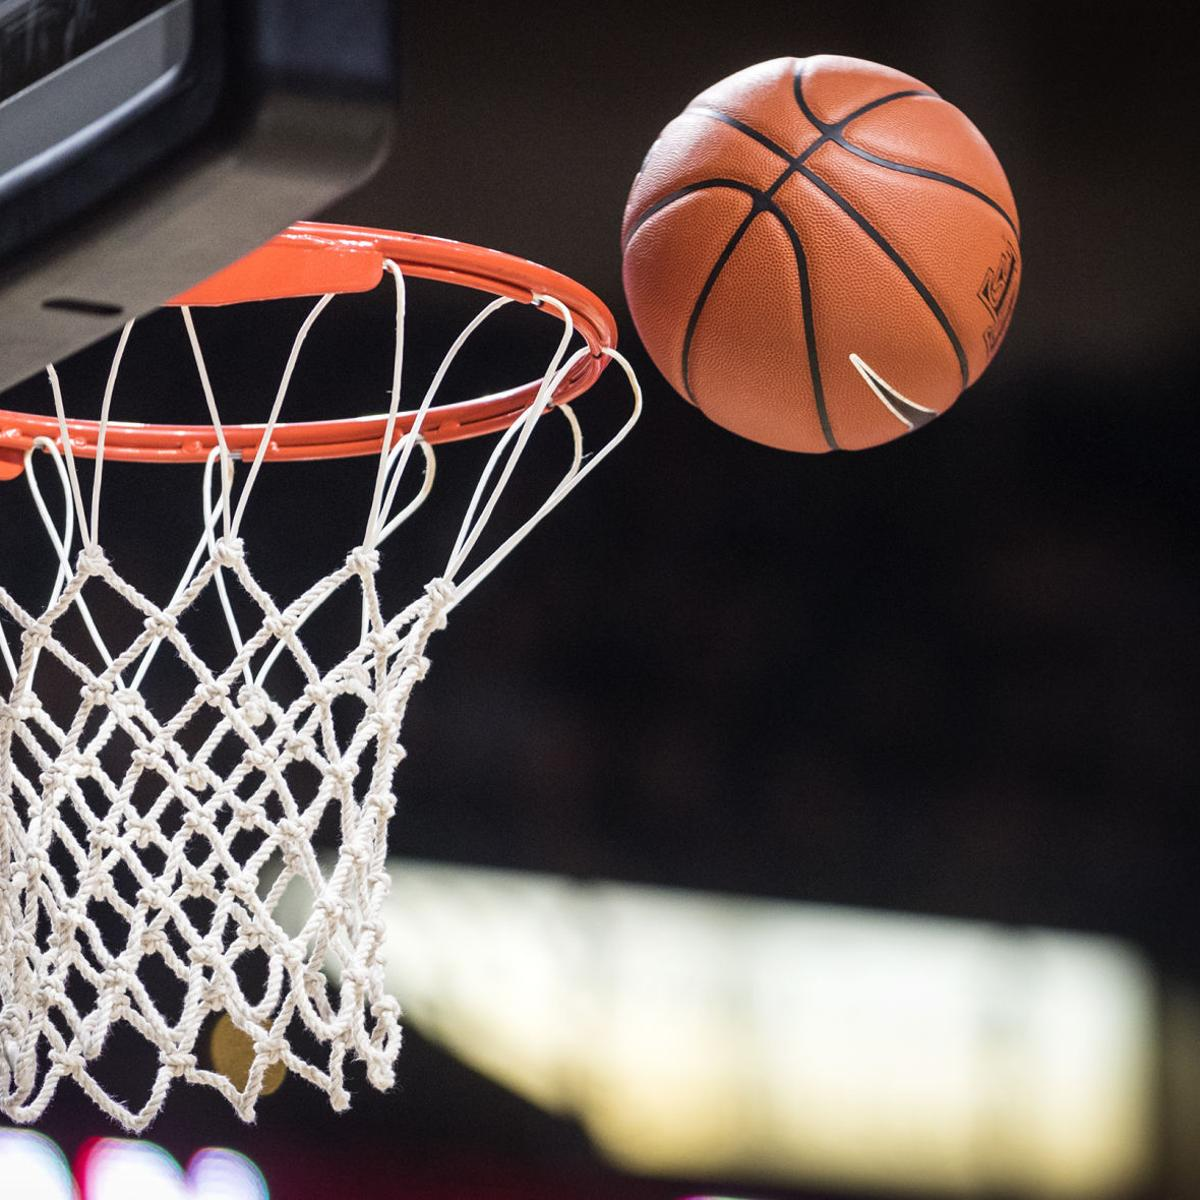 Basket Case Do Soft Rims Exist Answers Found In Basketball Style Mythbusters College Journalnow Com